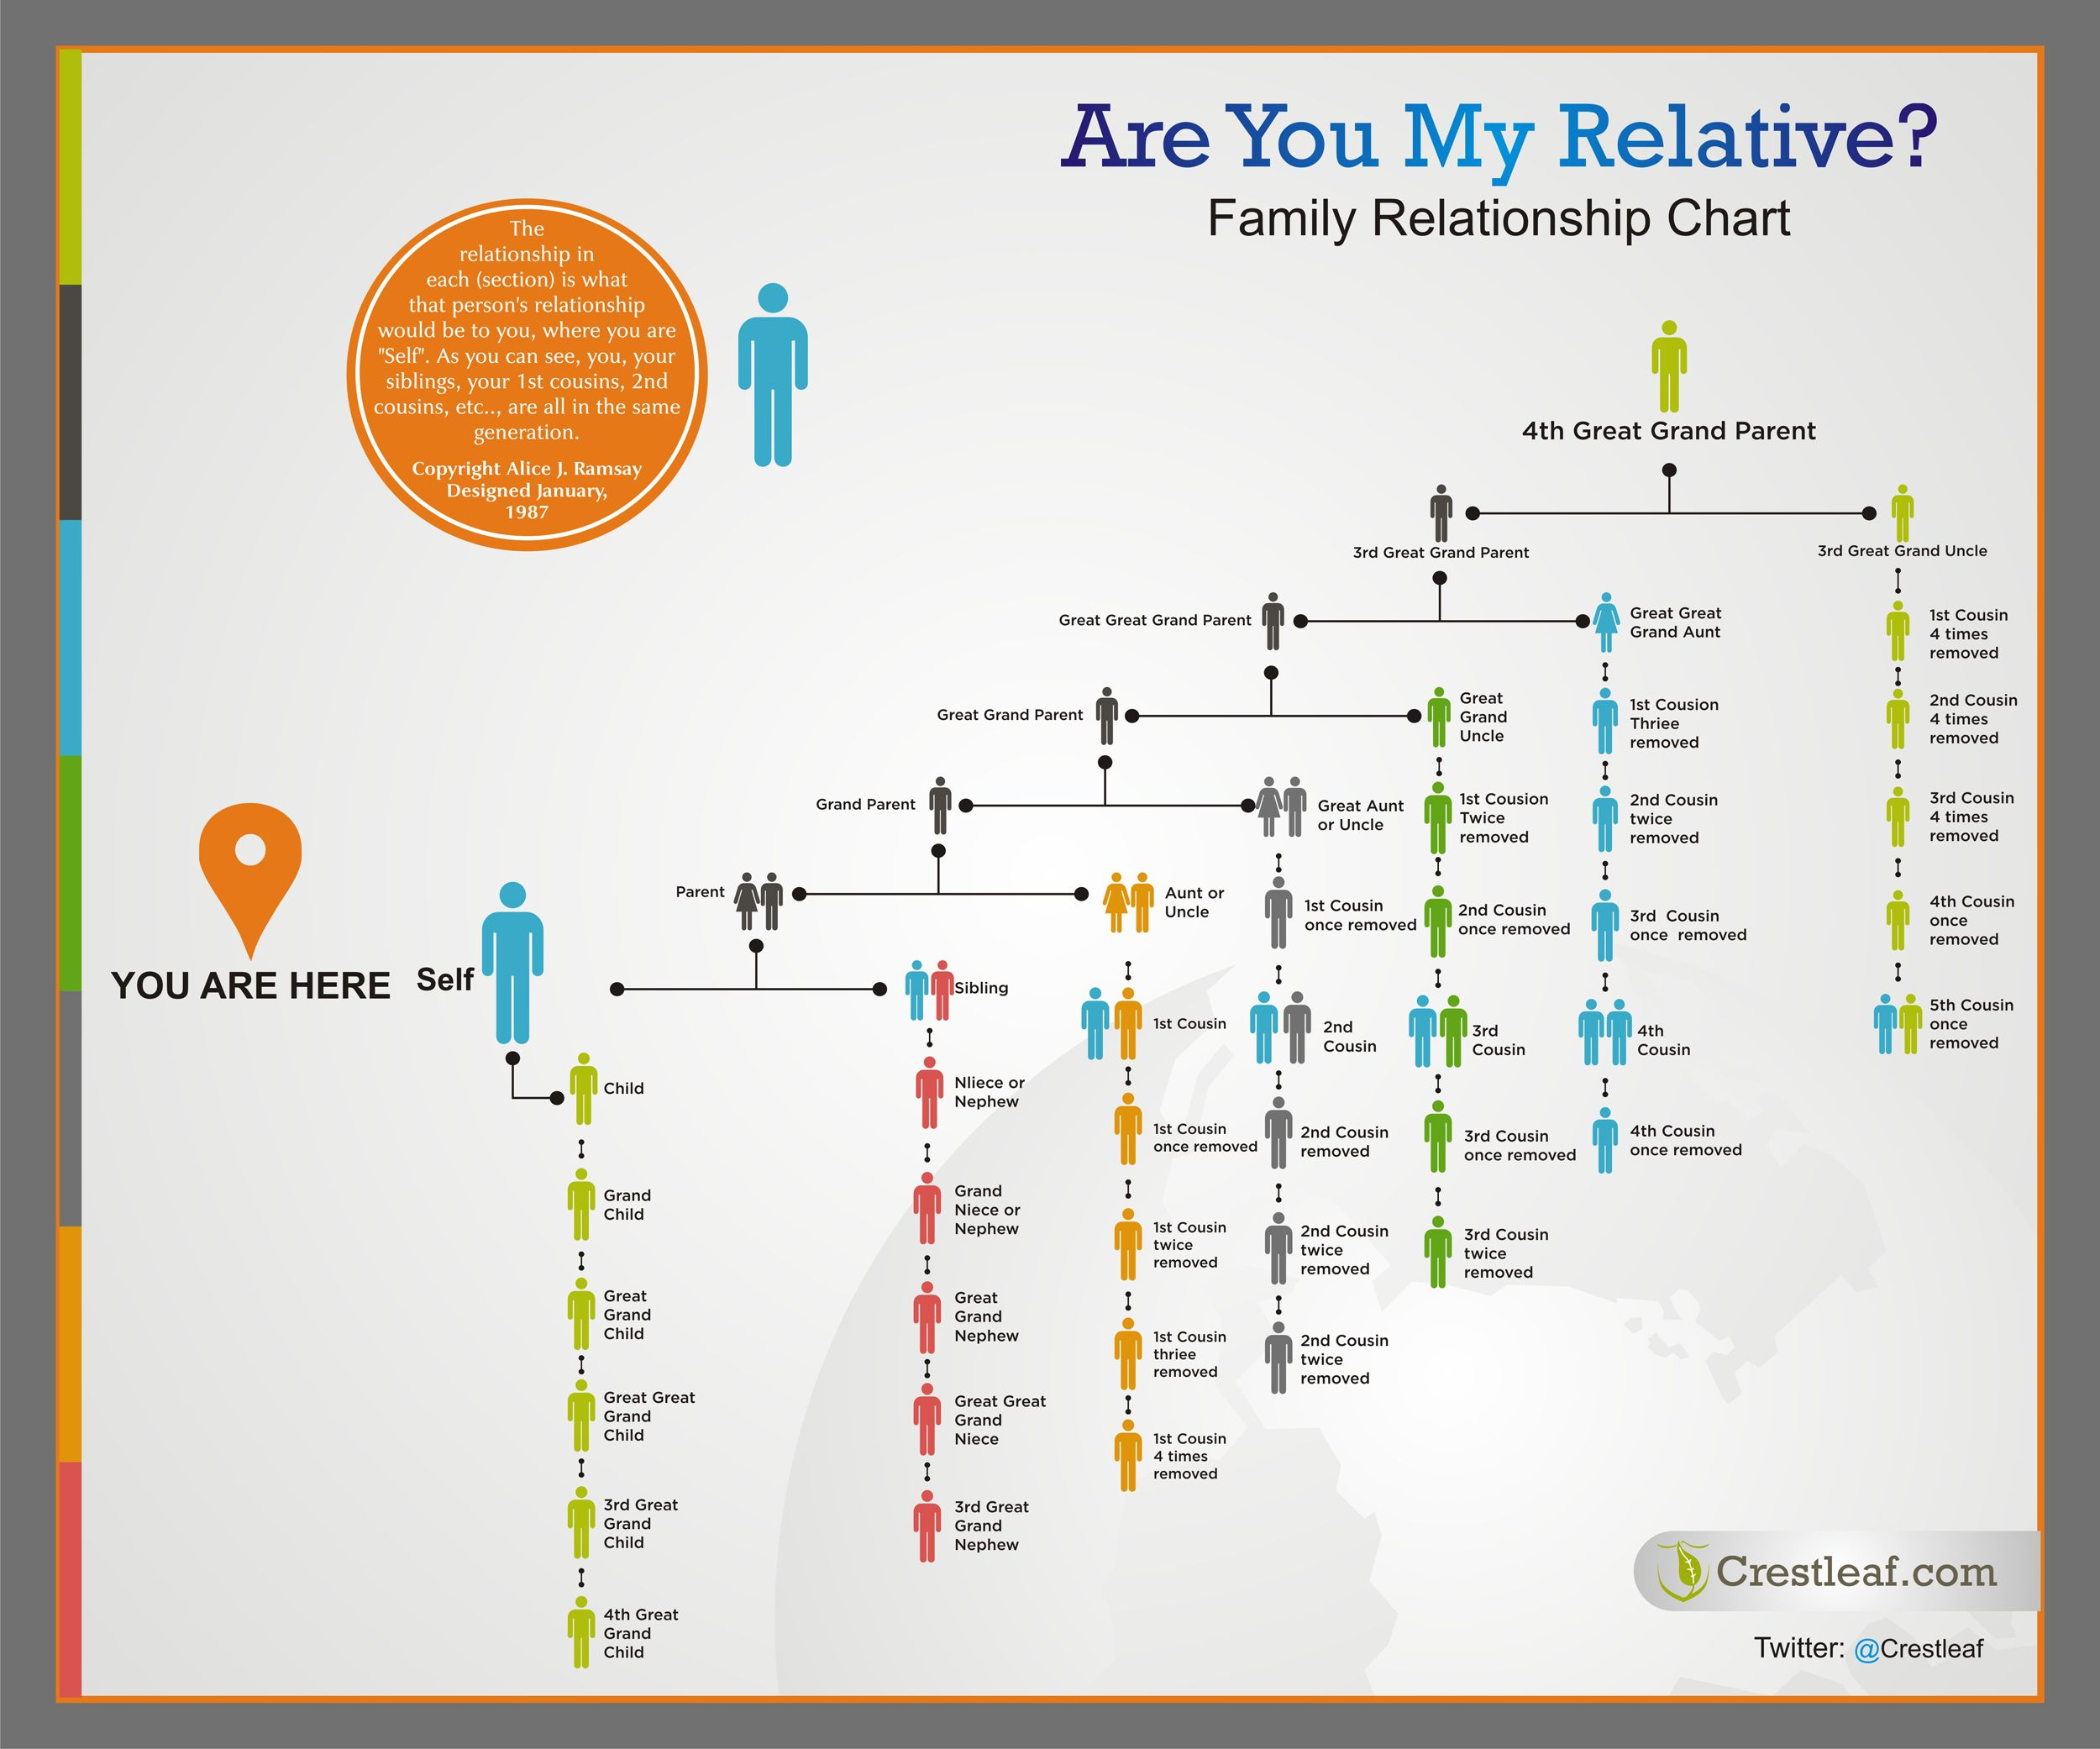 Are You My Relative Family Relationship Chart